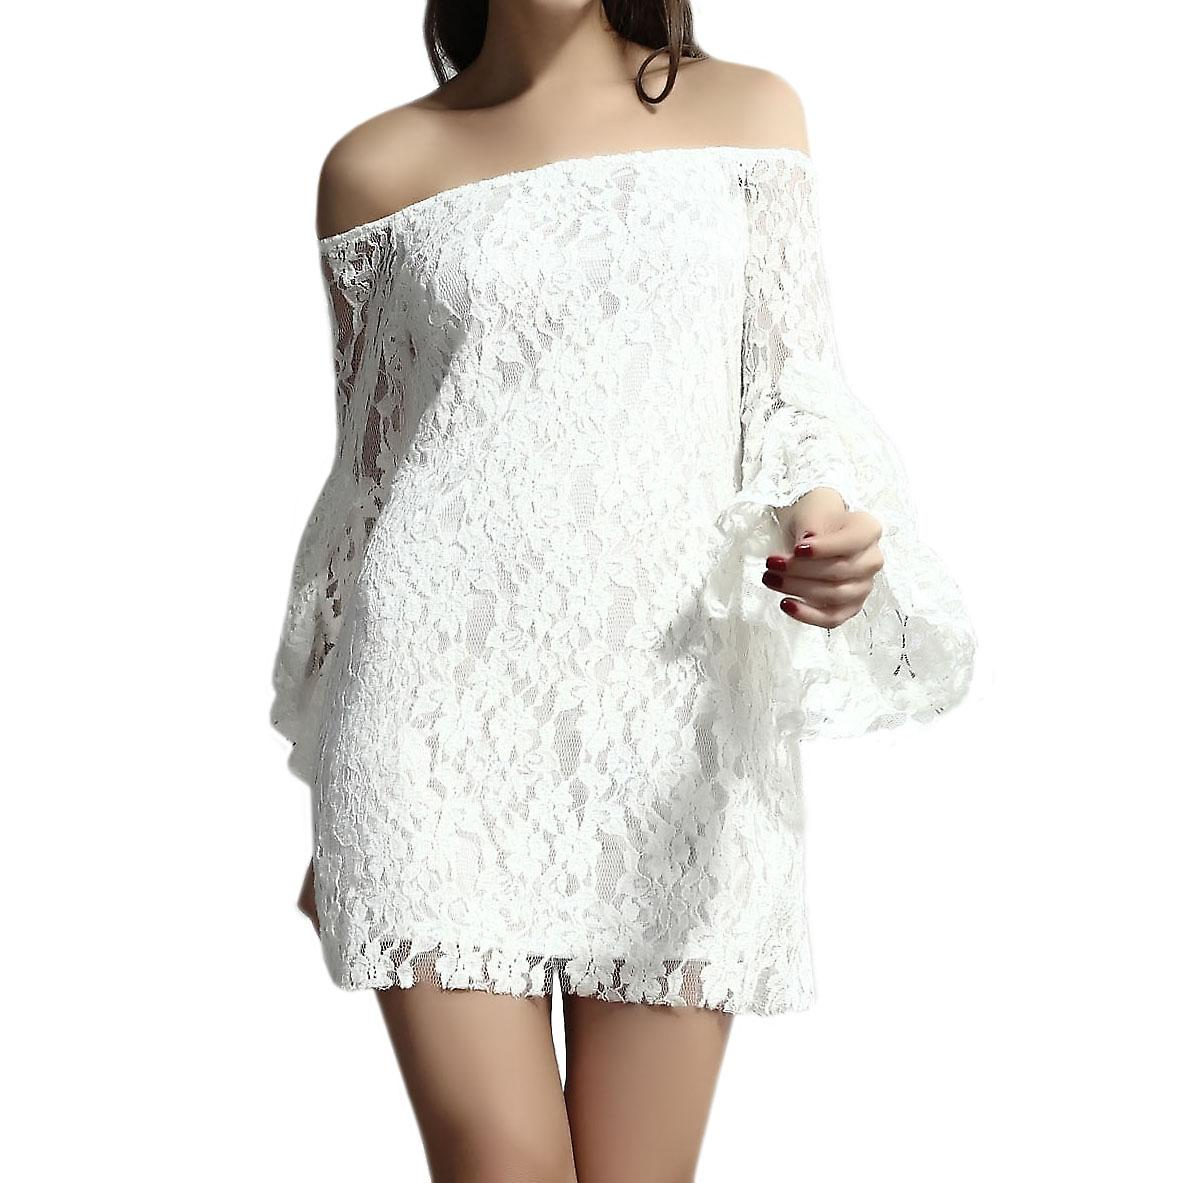 Waooh - Fashion - In Short Dress With Lace Wheel